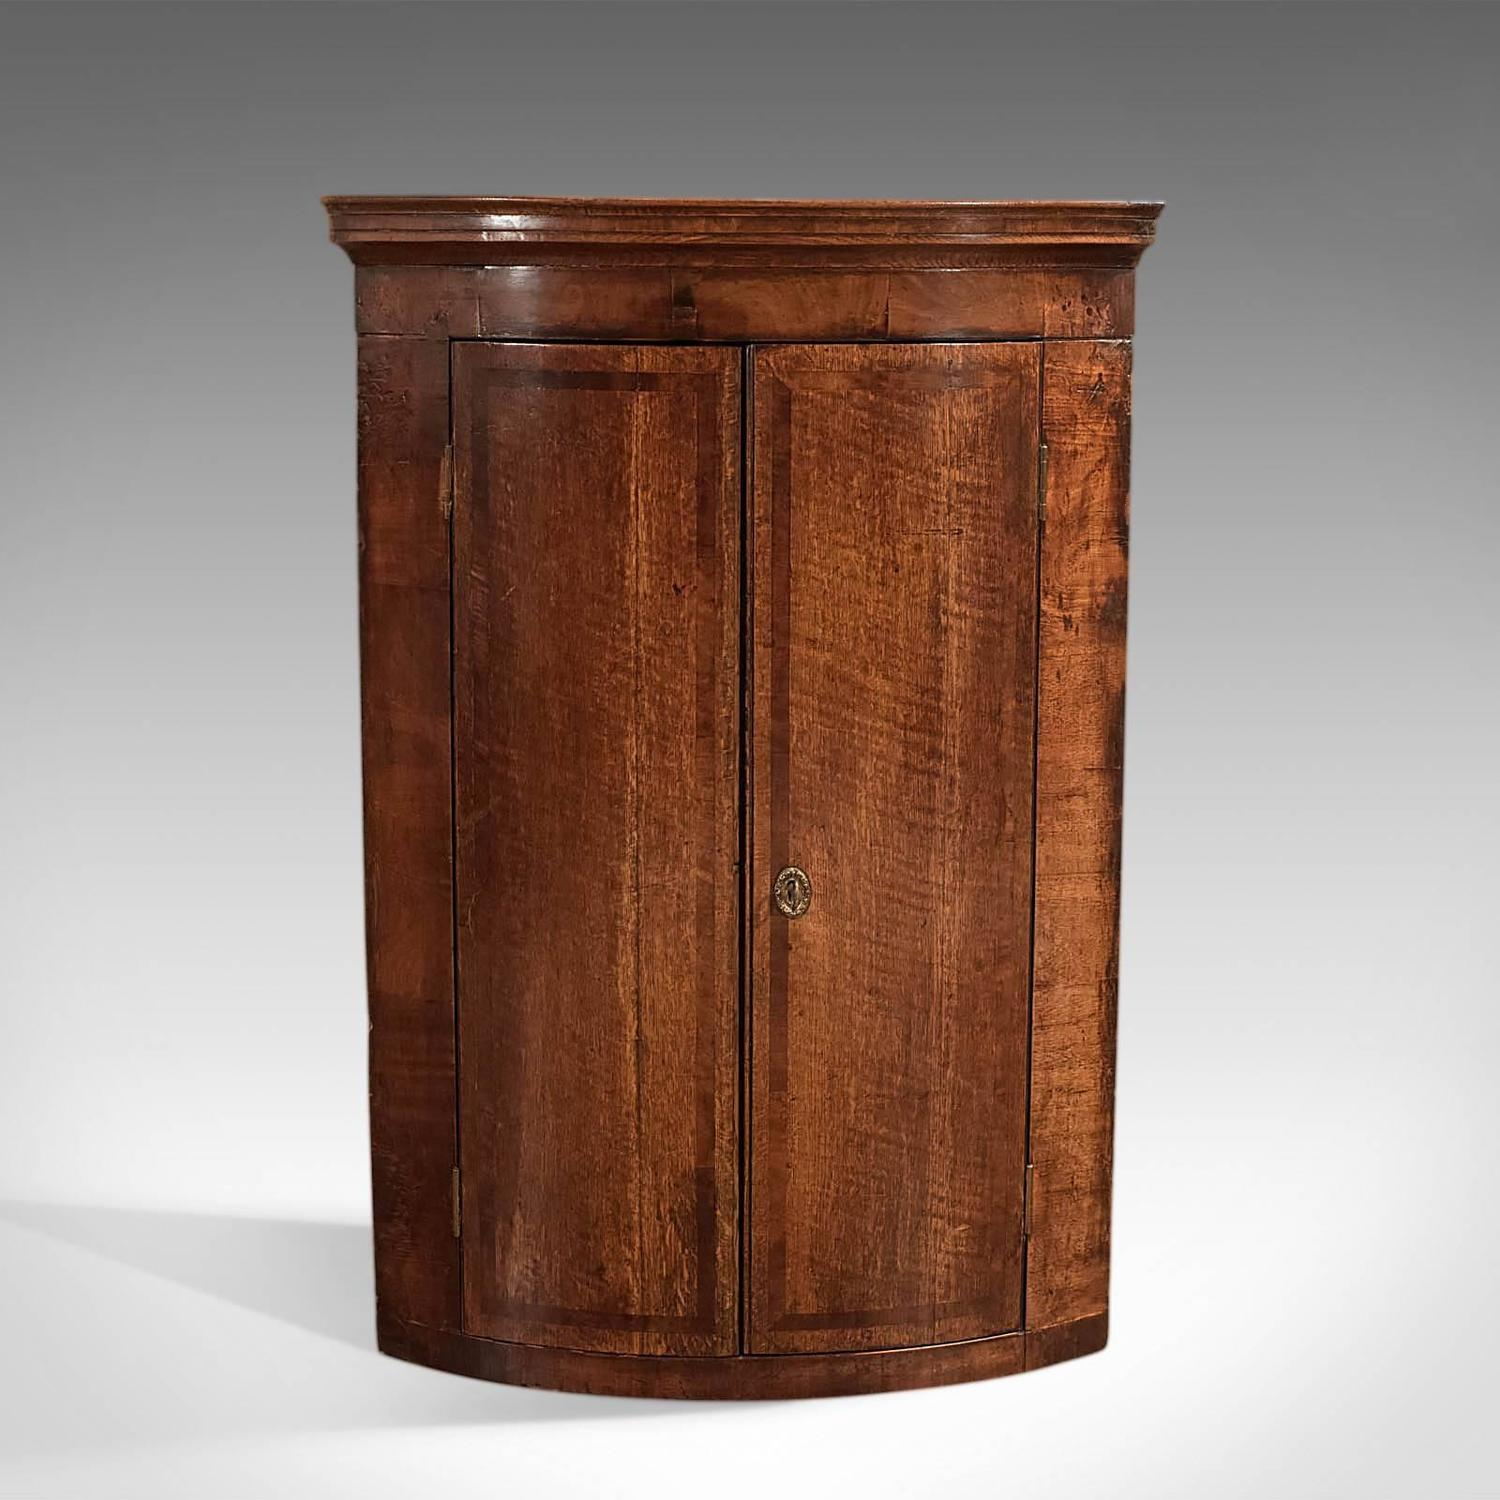 18th Century Antique Corner Cabinet, Georgian Hanging Cupboard, circa 1780  For Sale at 1stdibs - 18th Century Antique Corner Cabinet, Georgian Hanging Cupboard